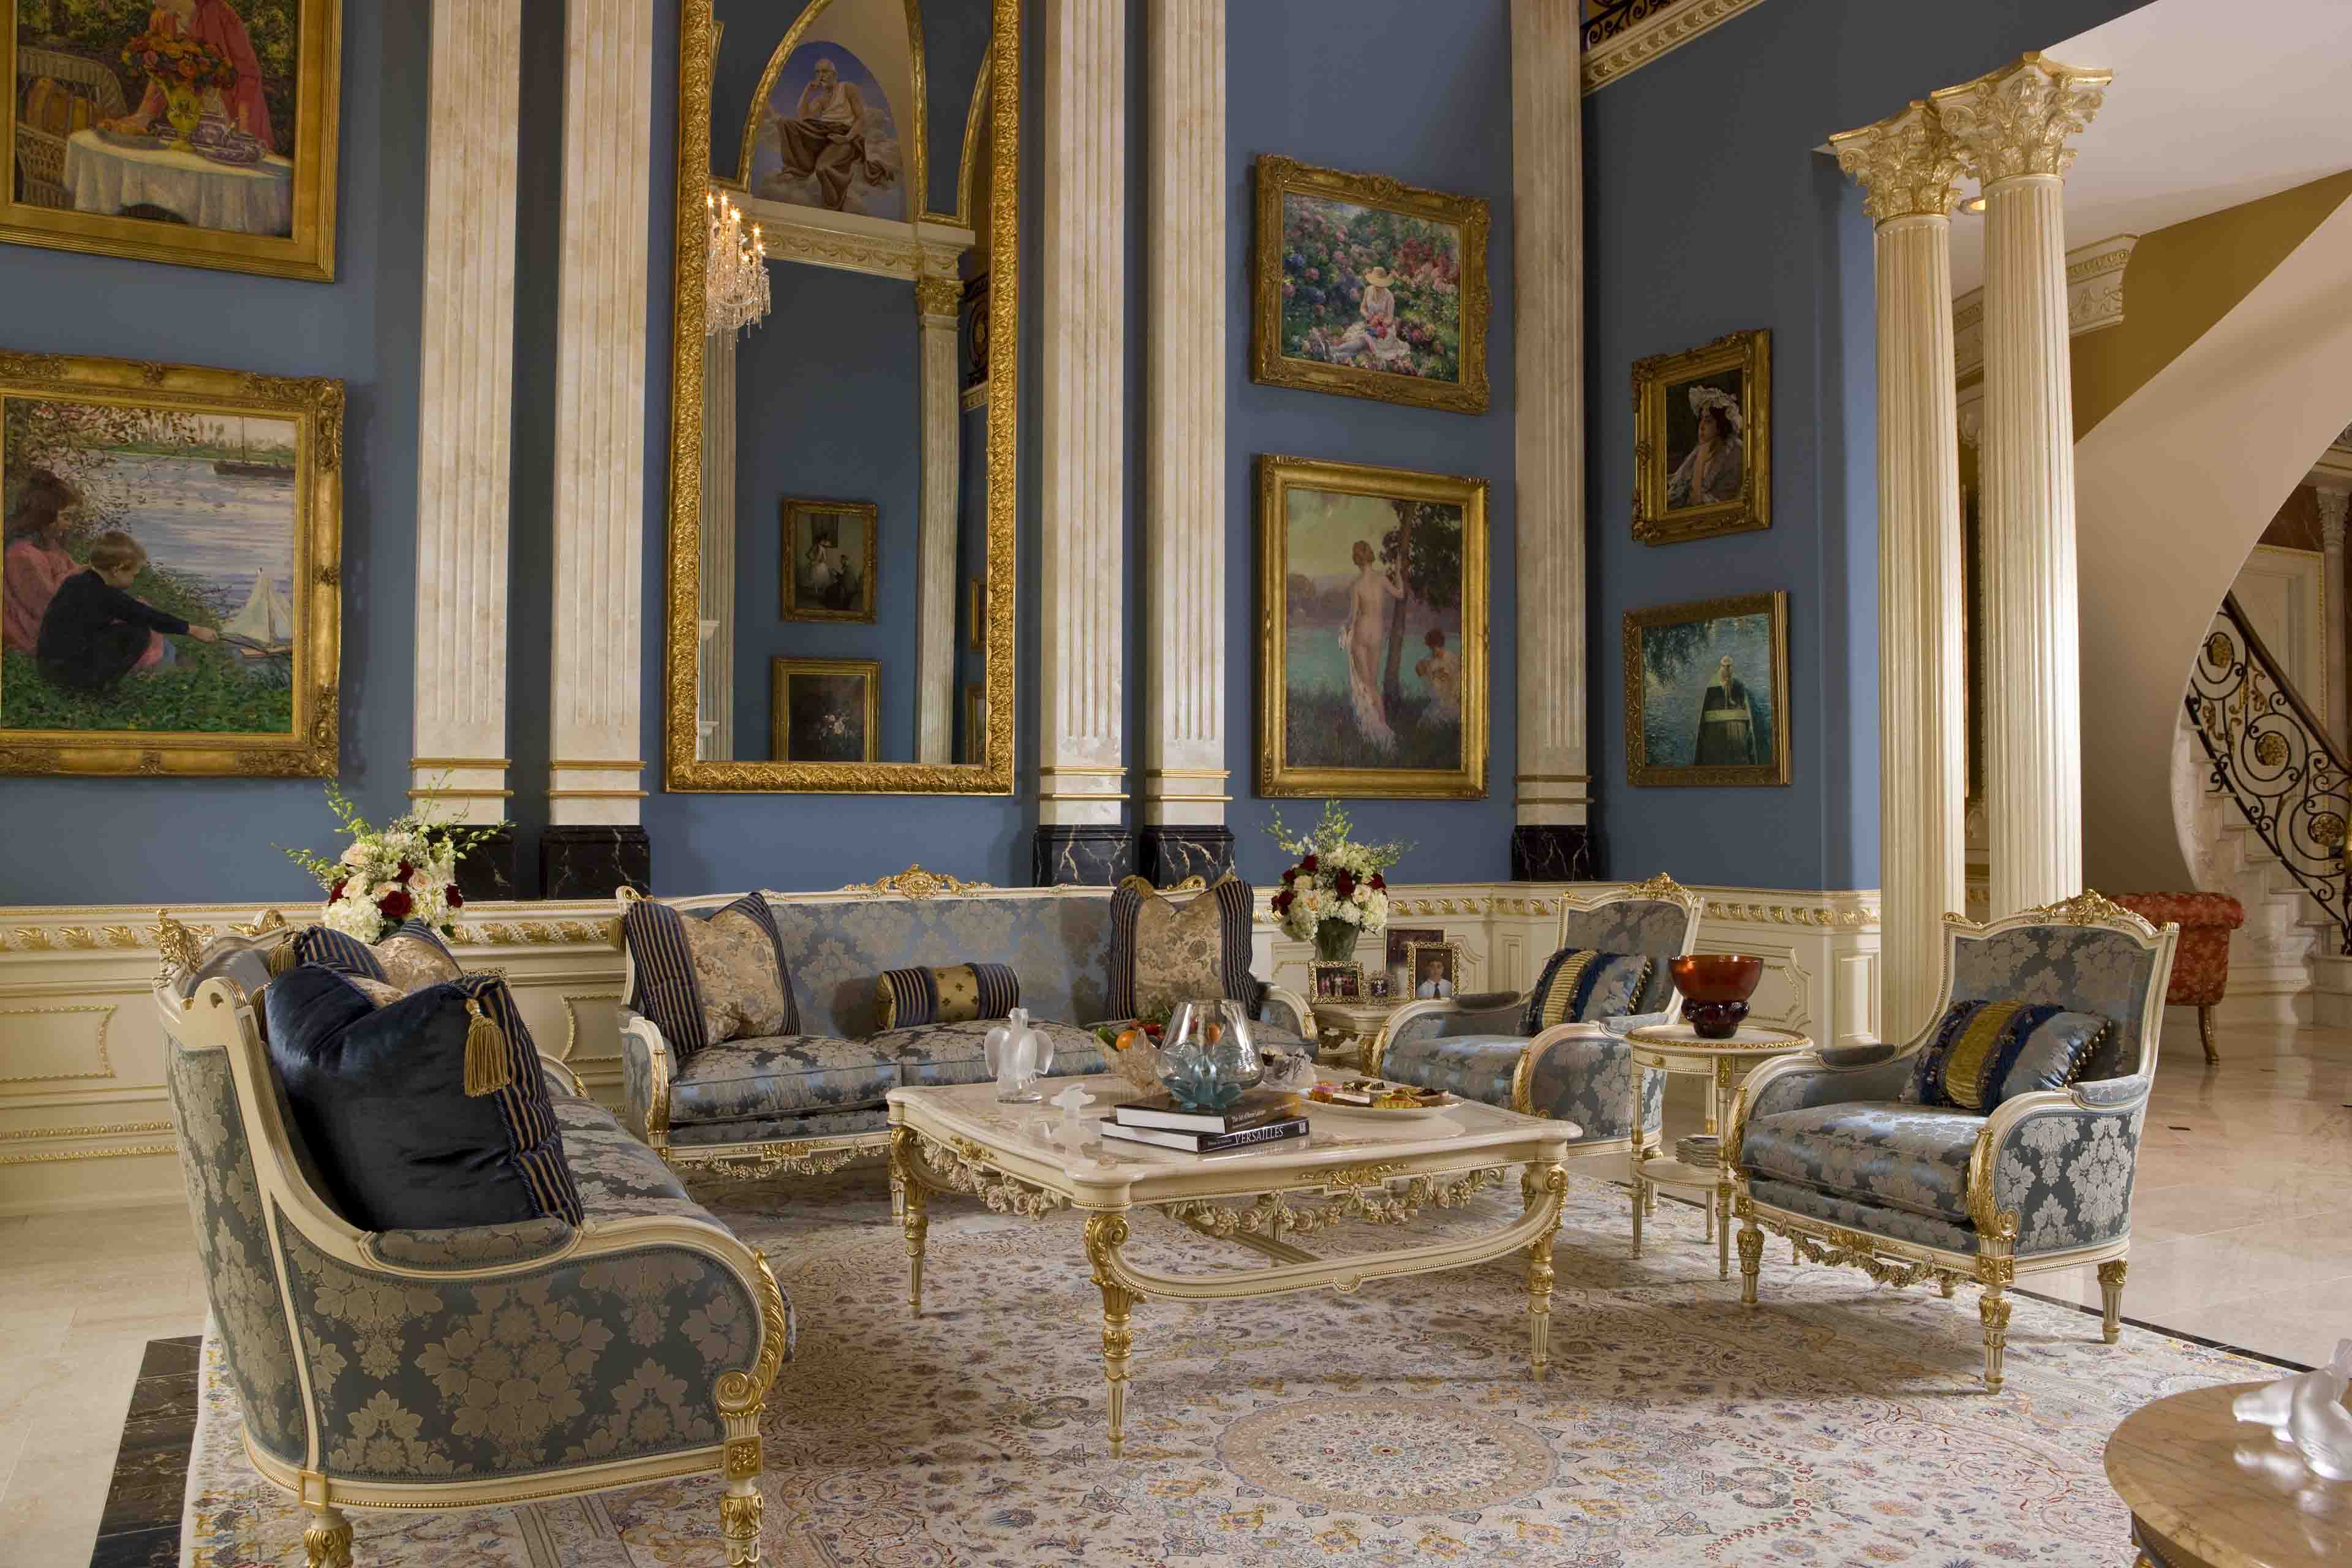 Classical grand salon with blue walls and columns in mansion in Potomac, Maryland